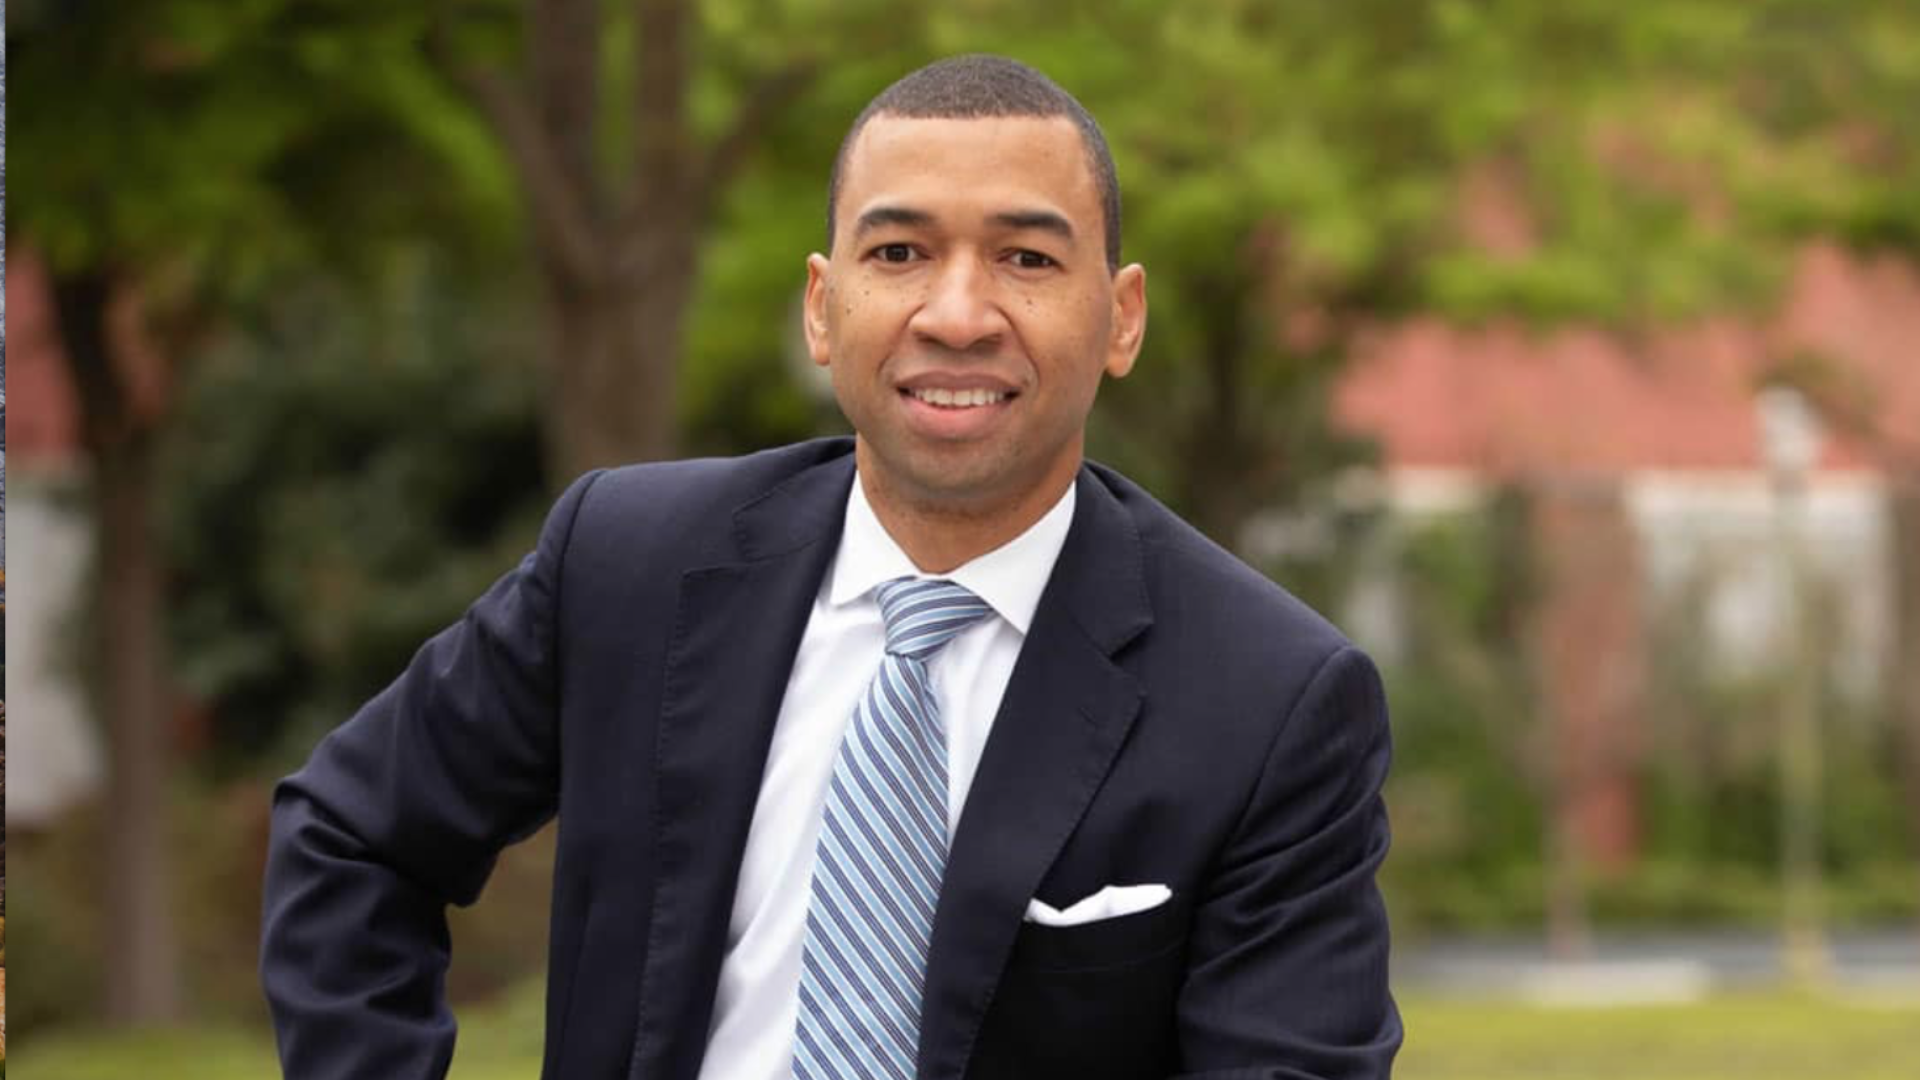 Montgomery, Alabama, Elects First Black Mayor